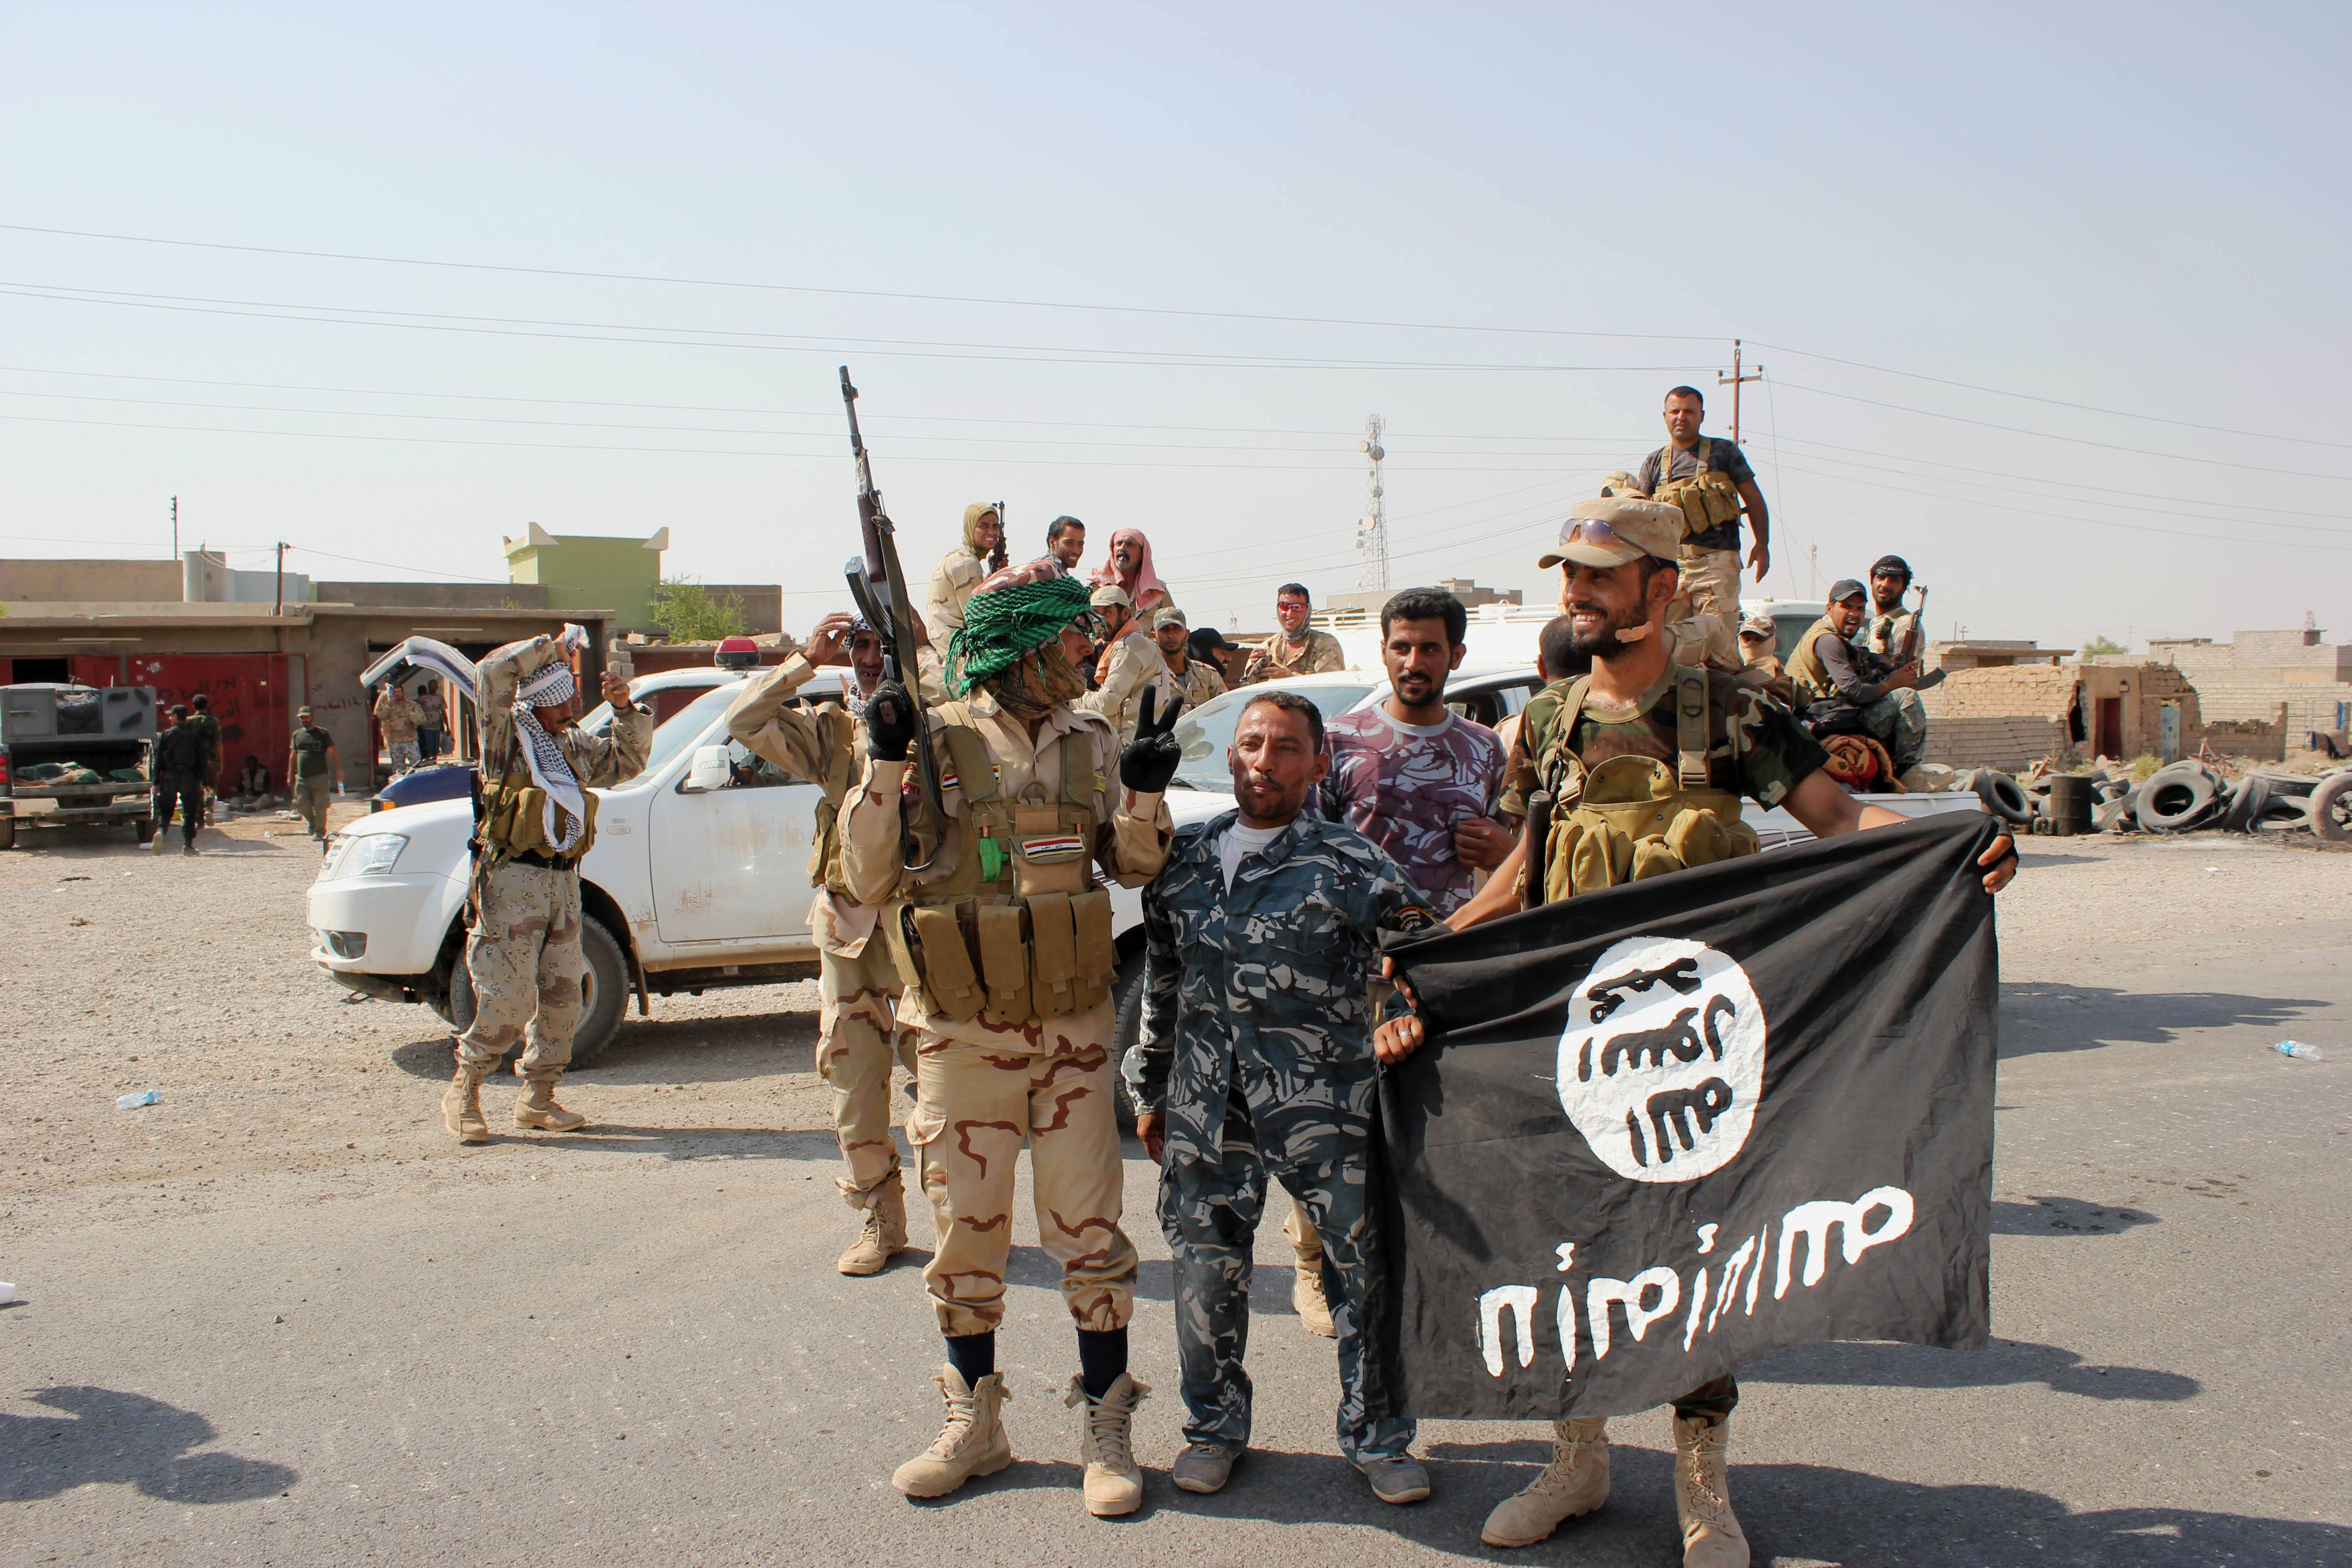 Governments work to stop jihadis going to Syria, Iraq